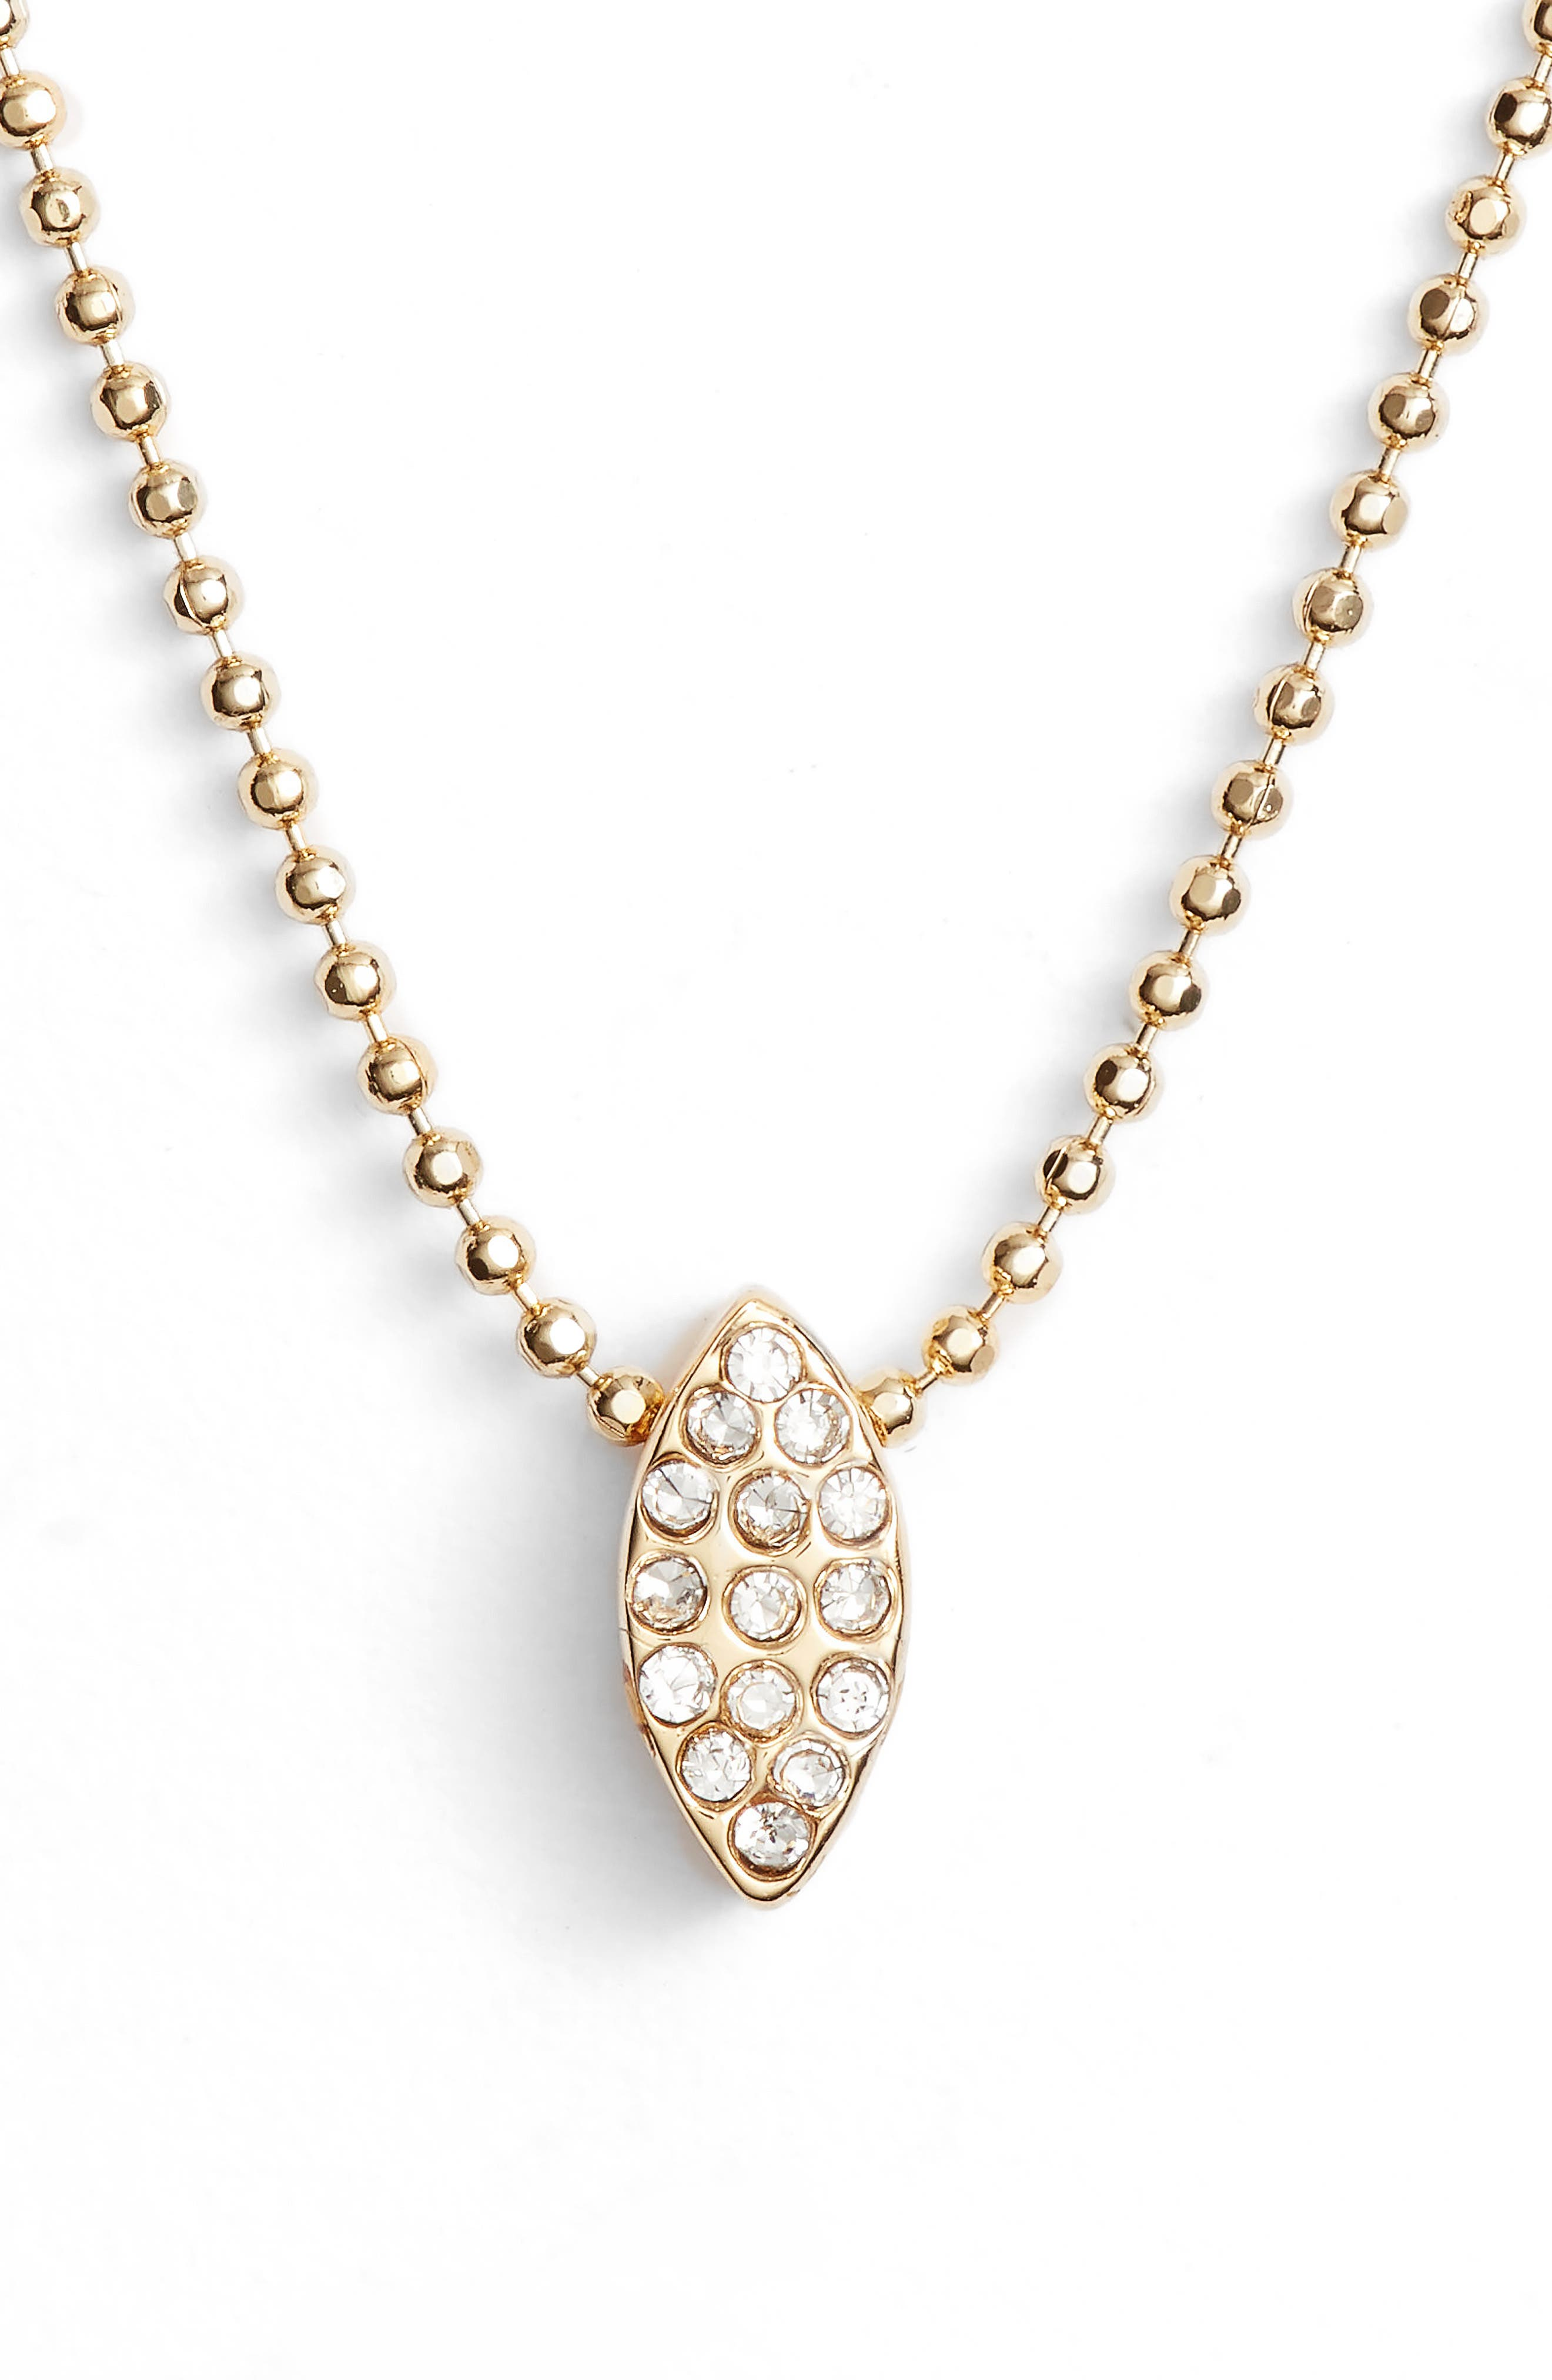 UNCOMMON JAMES BY KRISTIN CAVALLARI, Uncommon James Just a Touch Necklace, Main thumbnail 1, color, 710